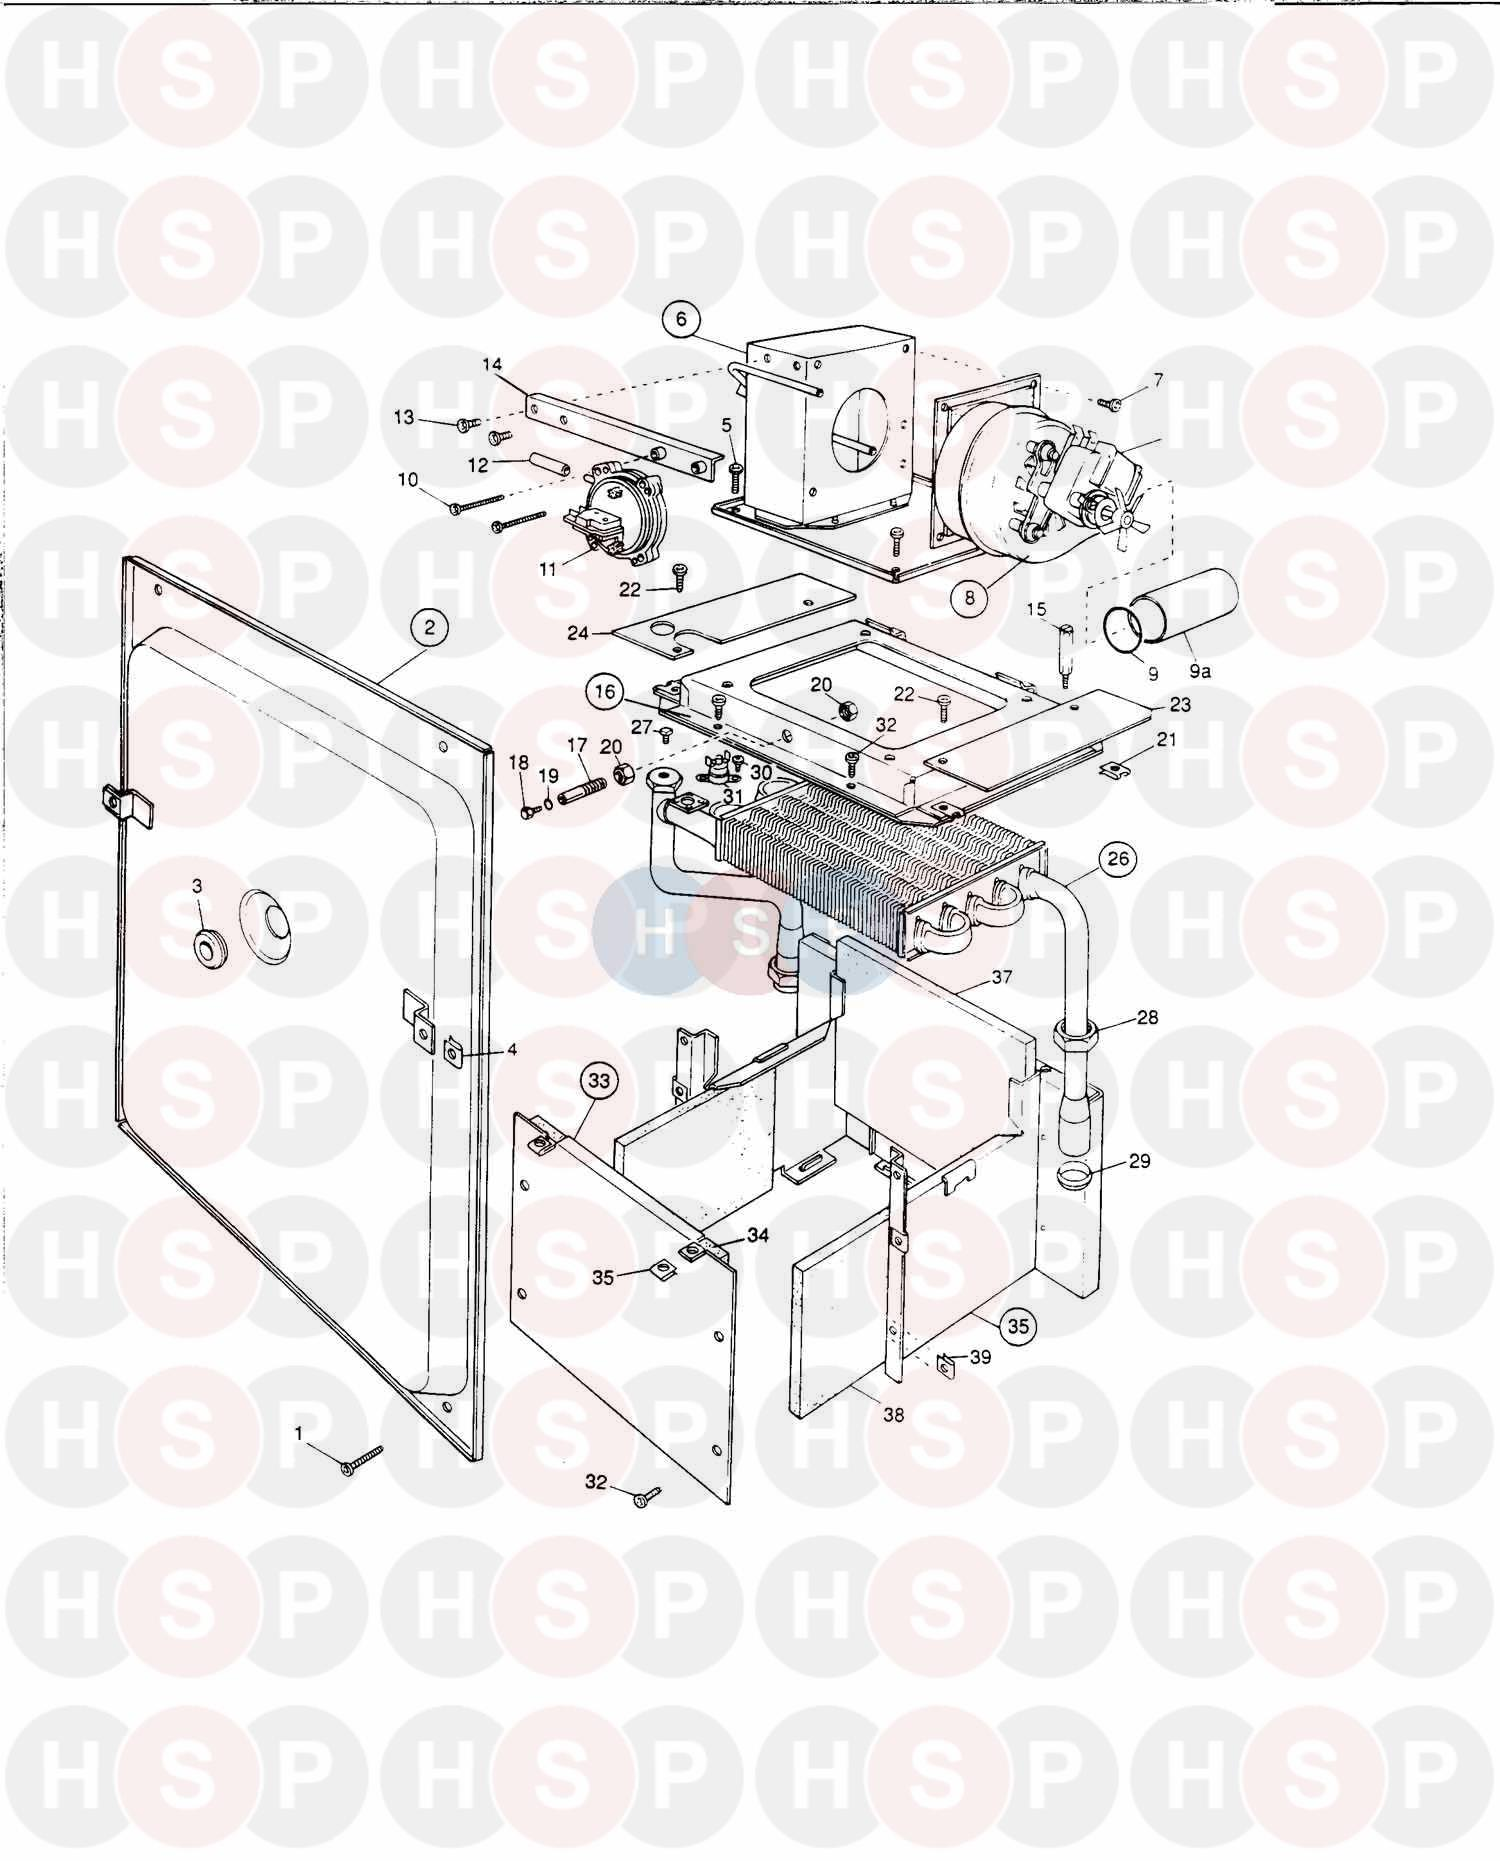 Potterton ULTRA 60 Appliance Diagram (ASSEMBLY 1